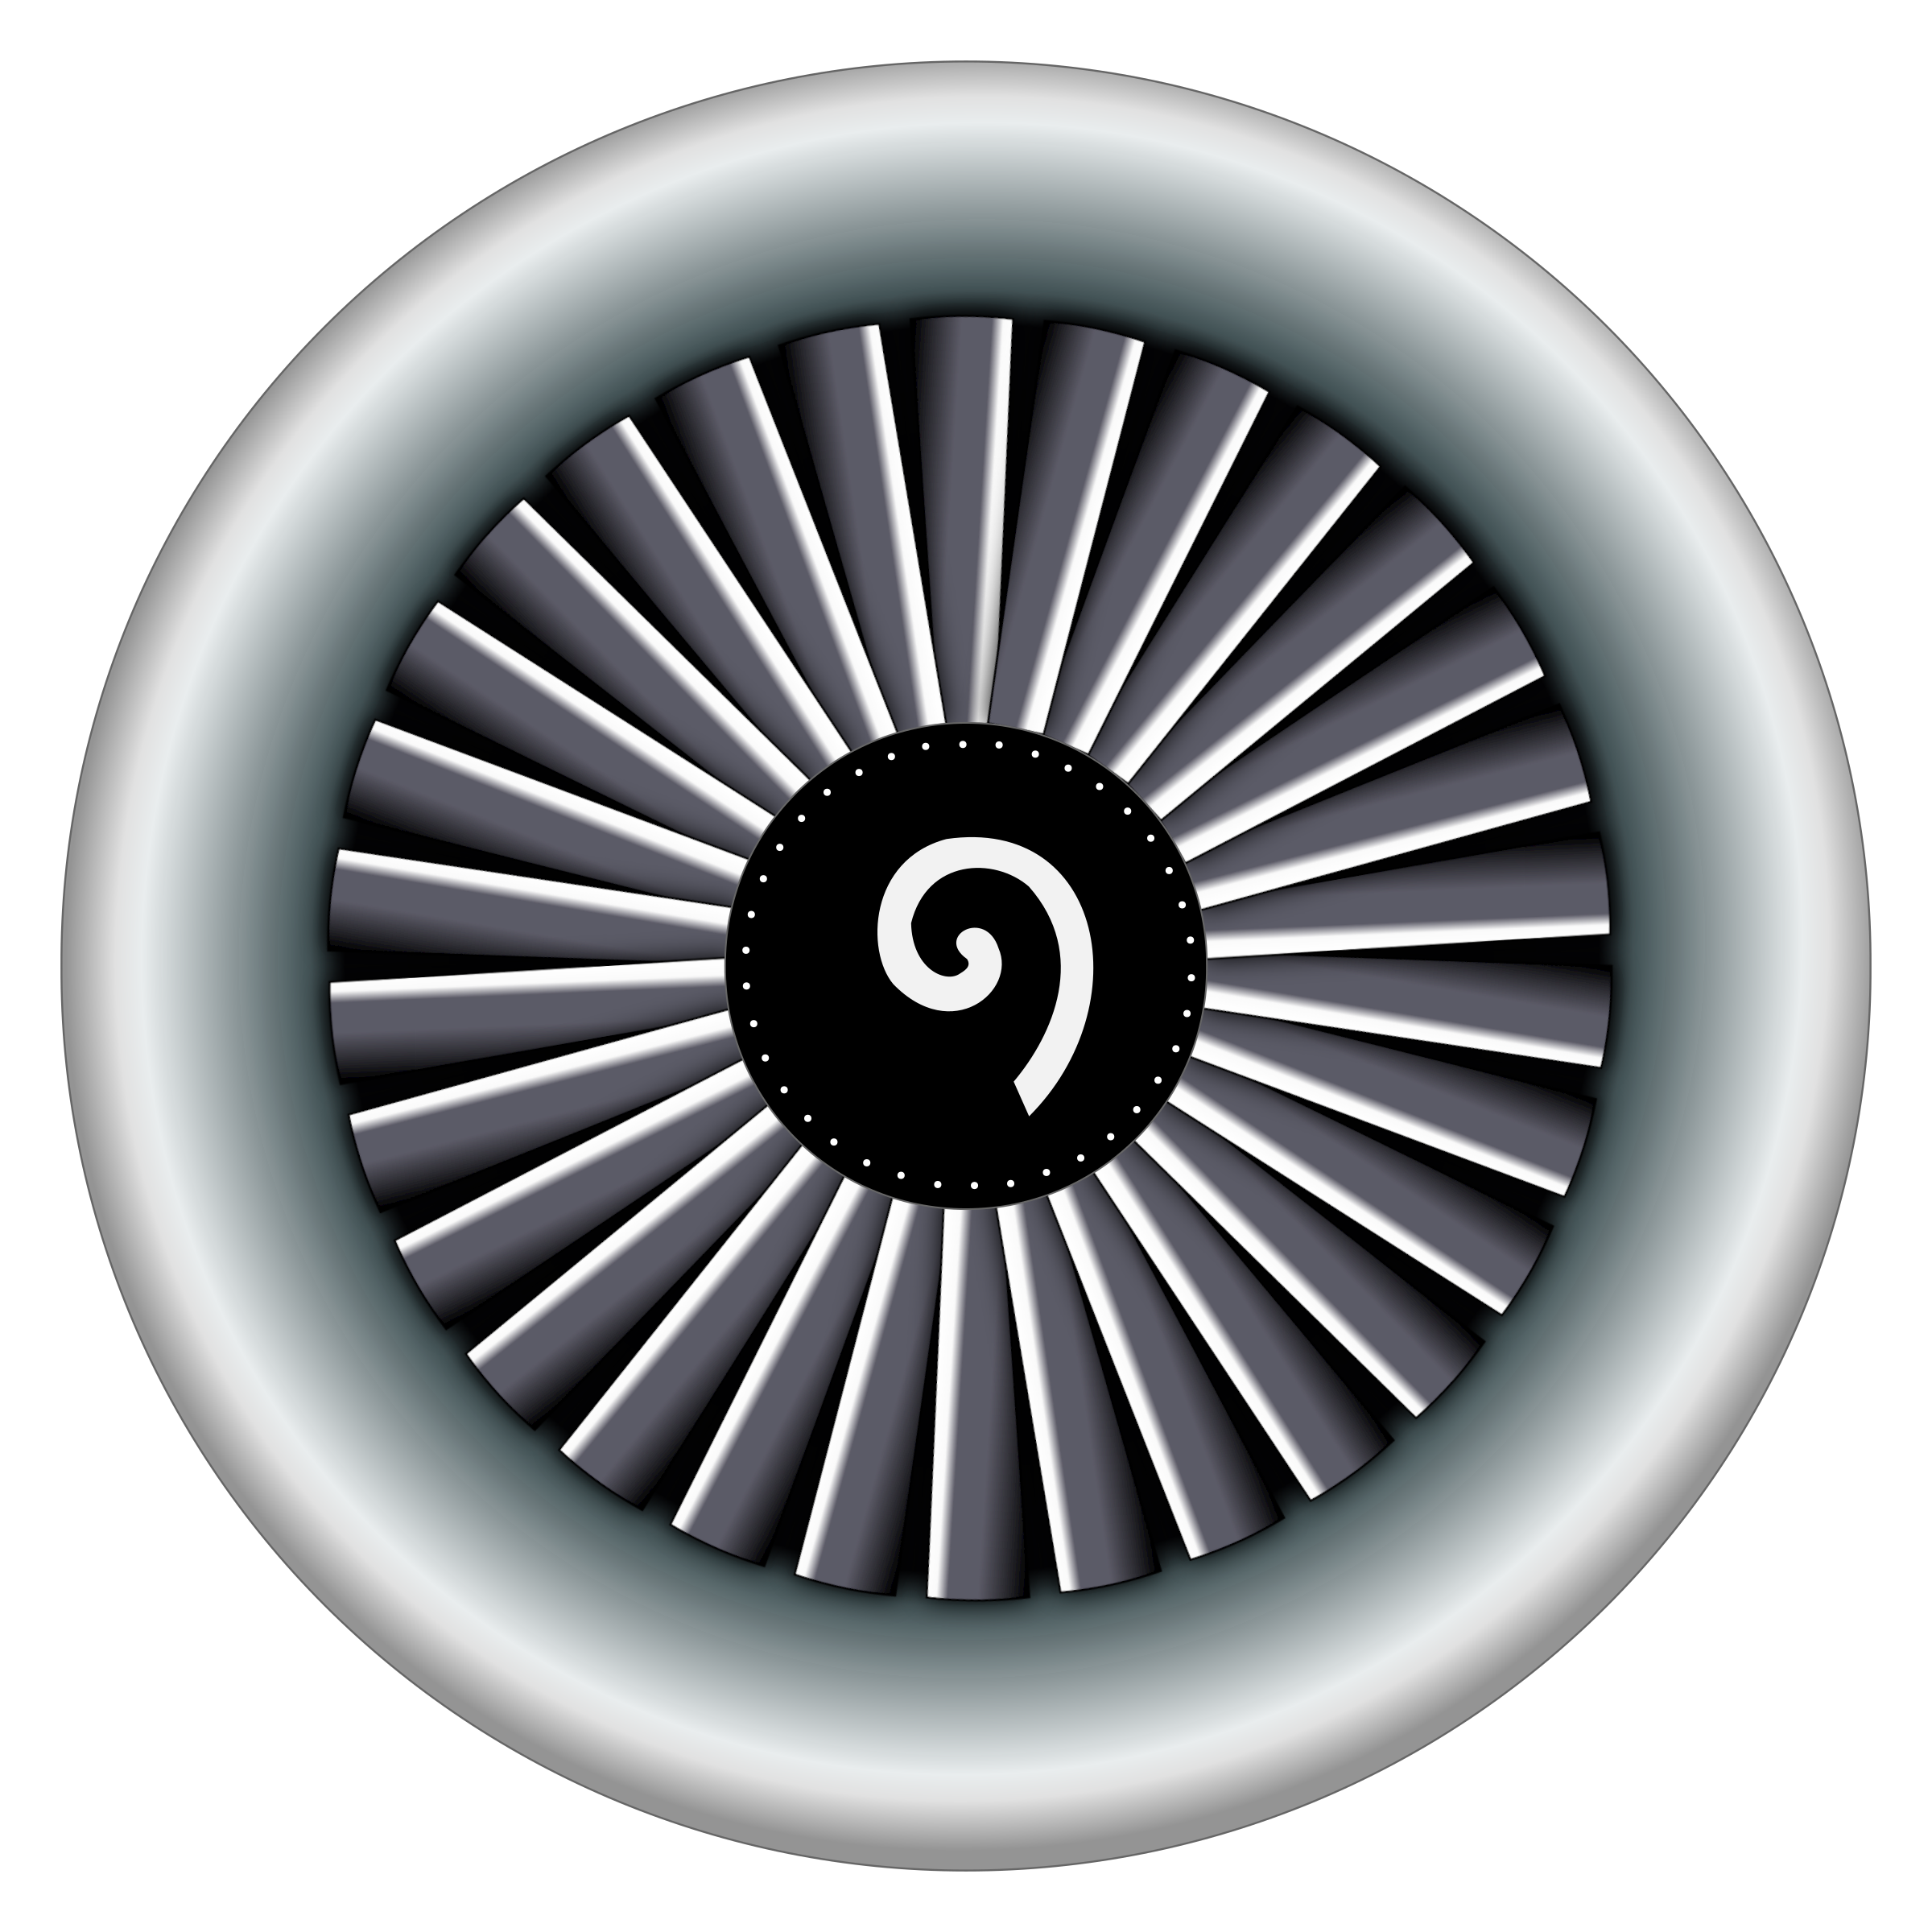 Jet Engine by AeroGeek